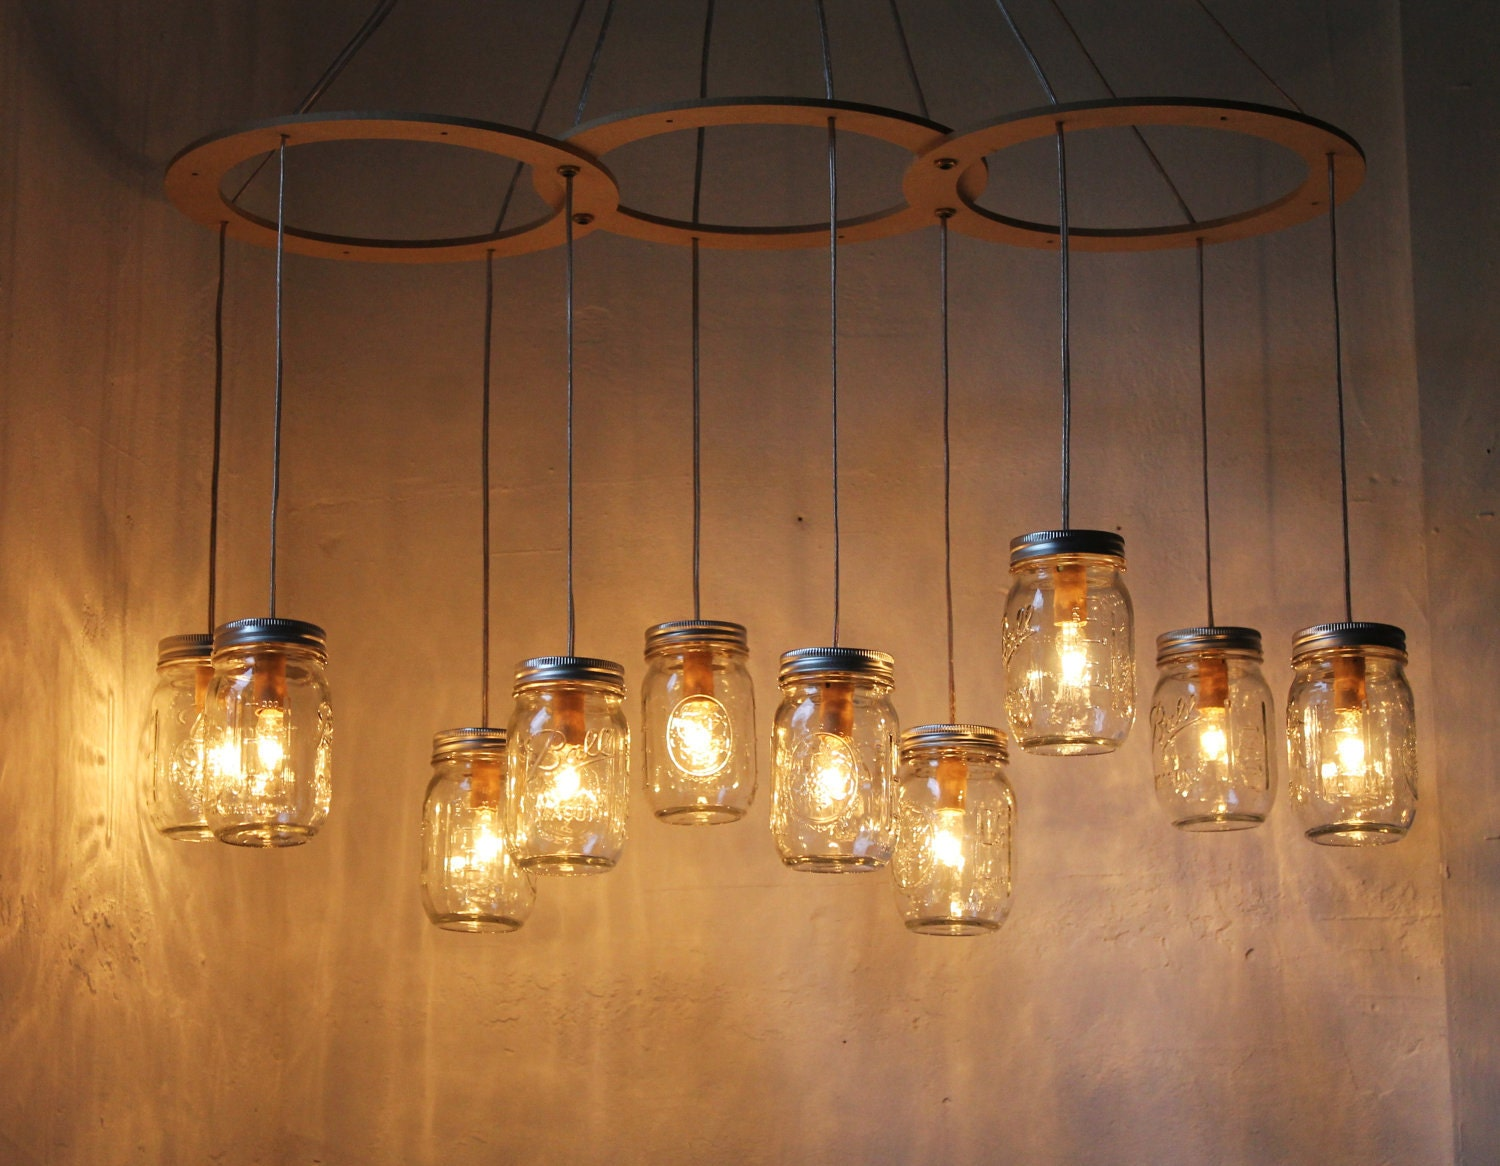 Mason jar chandelier lighting fixture large rustic mason jar zoom arubaitofo Image collections